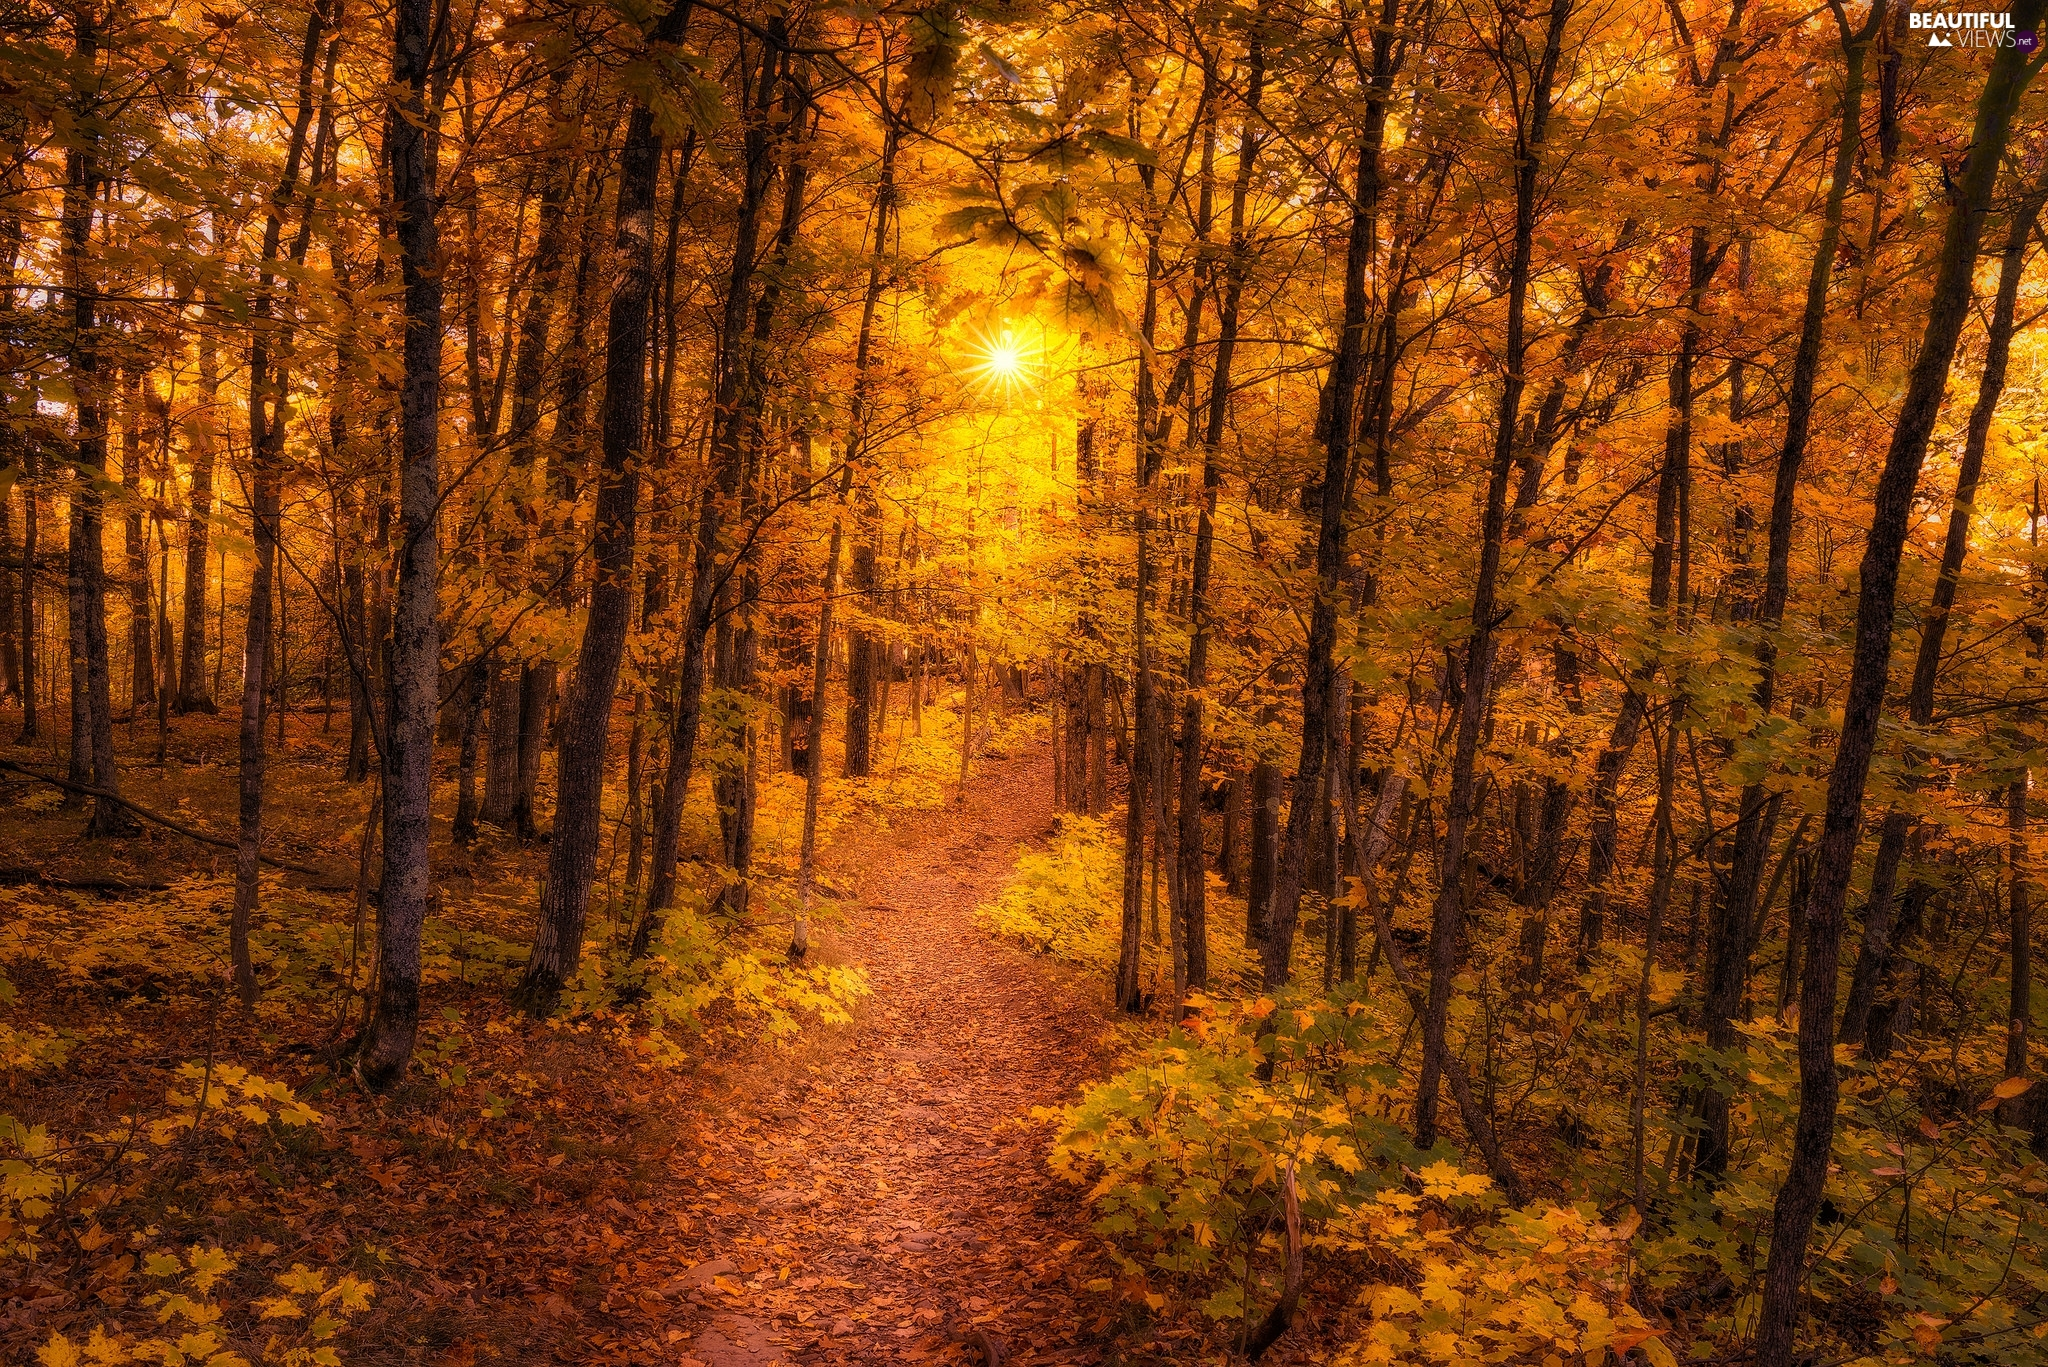 forest, Path, rays of the Sun, autumn